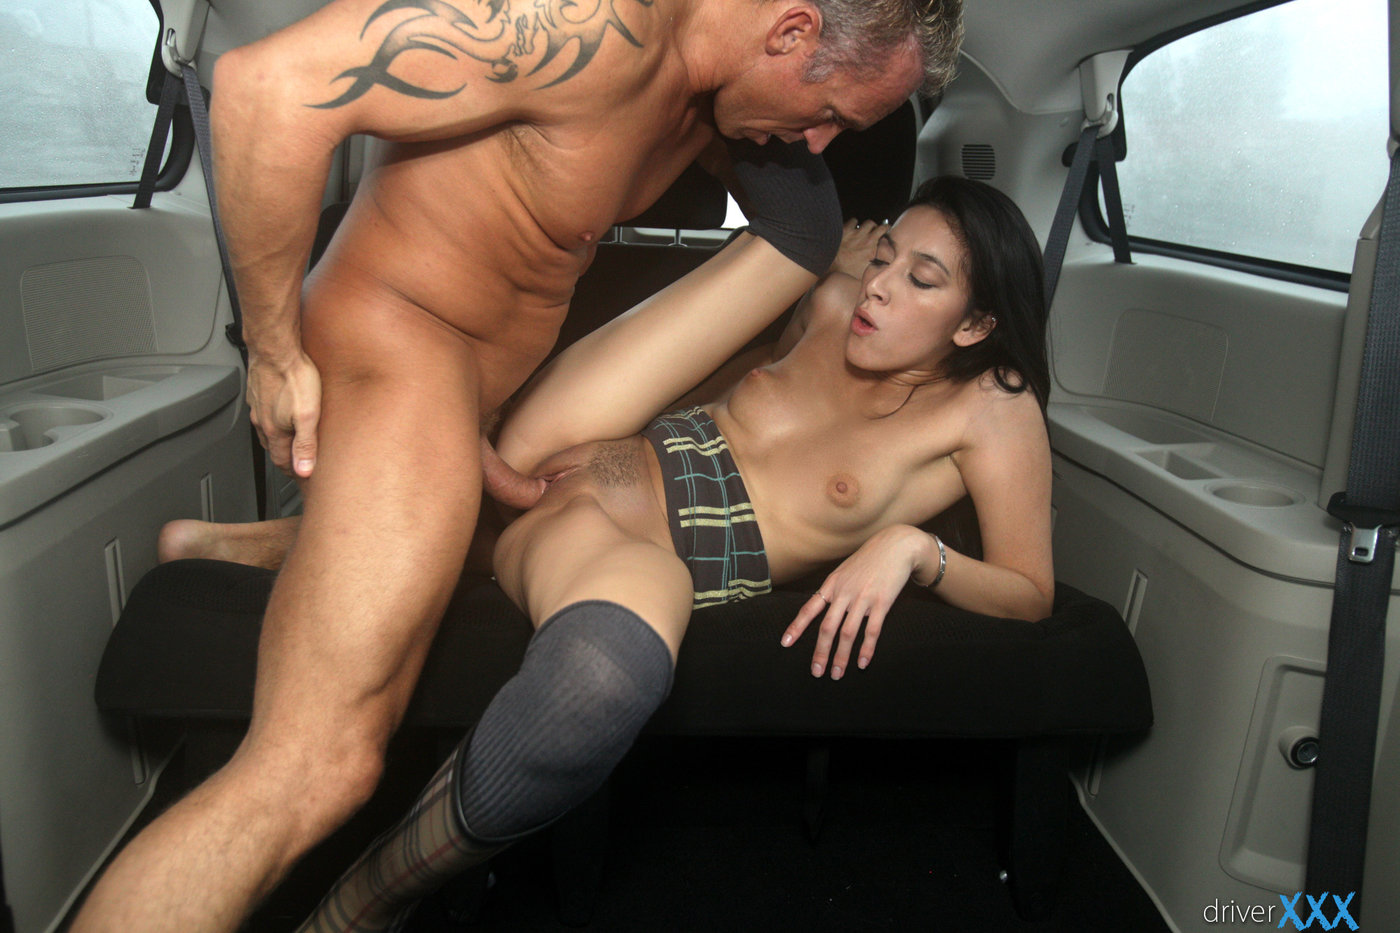 Kombat getting fucked in the back seat big cock indian